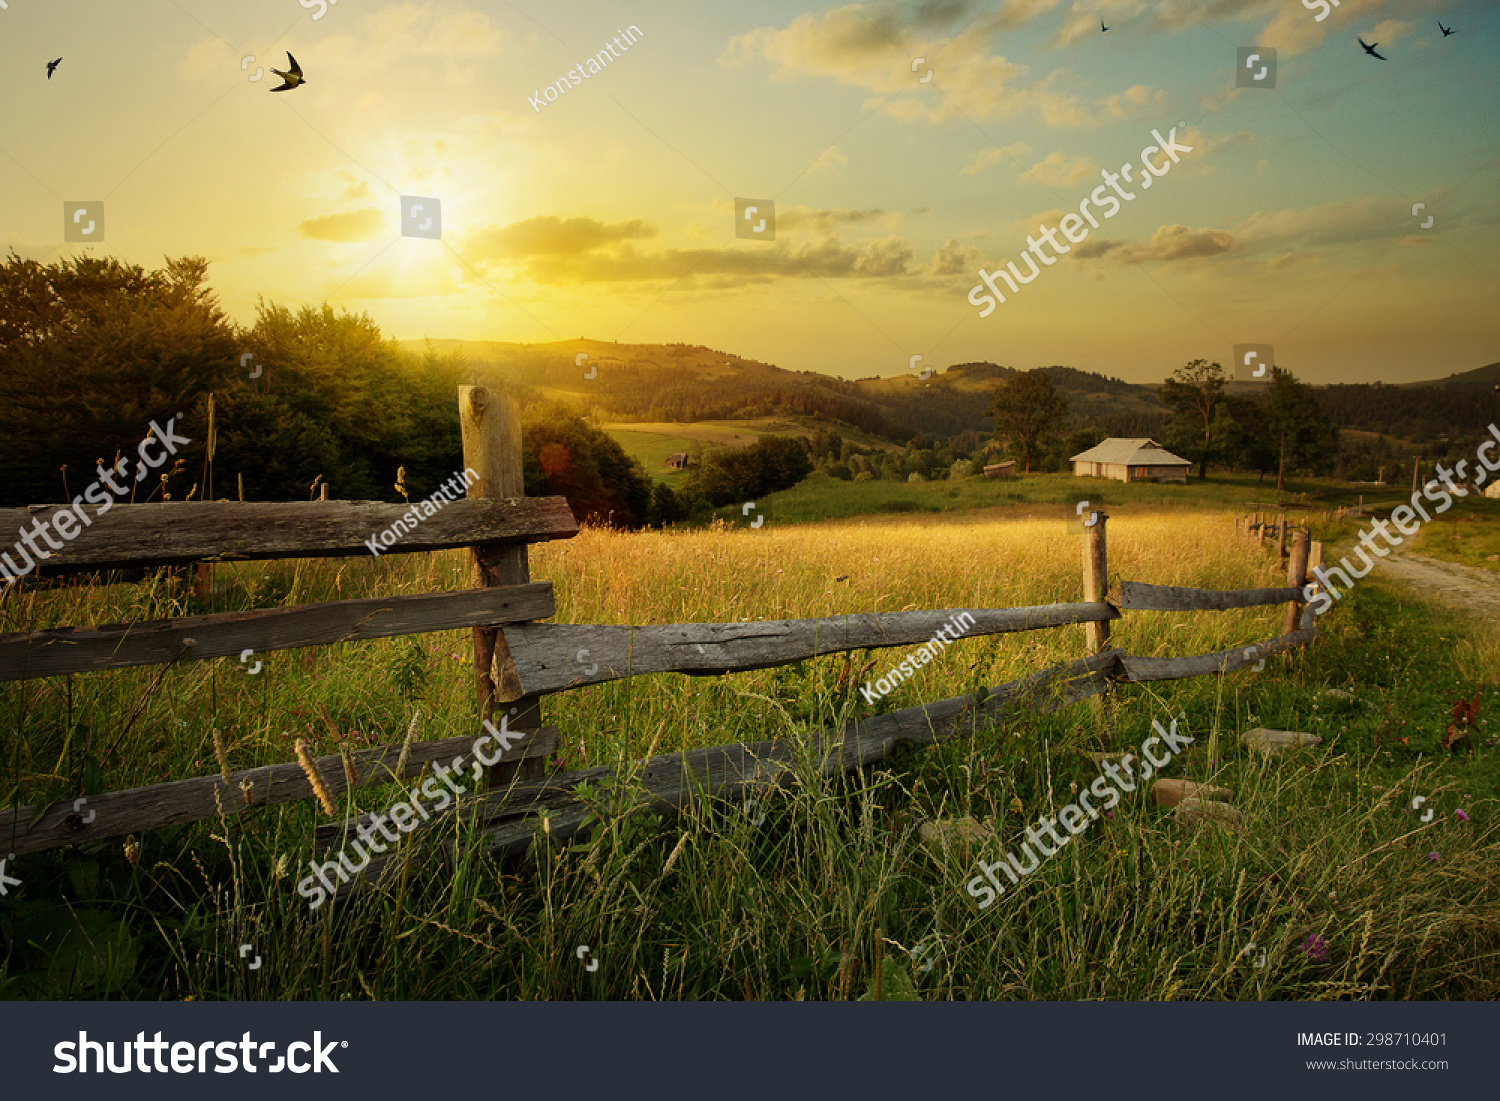 art rural landscape. field and grass  #298710401